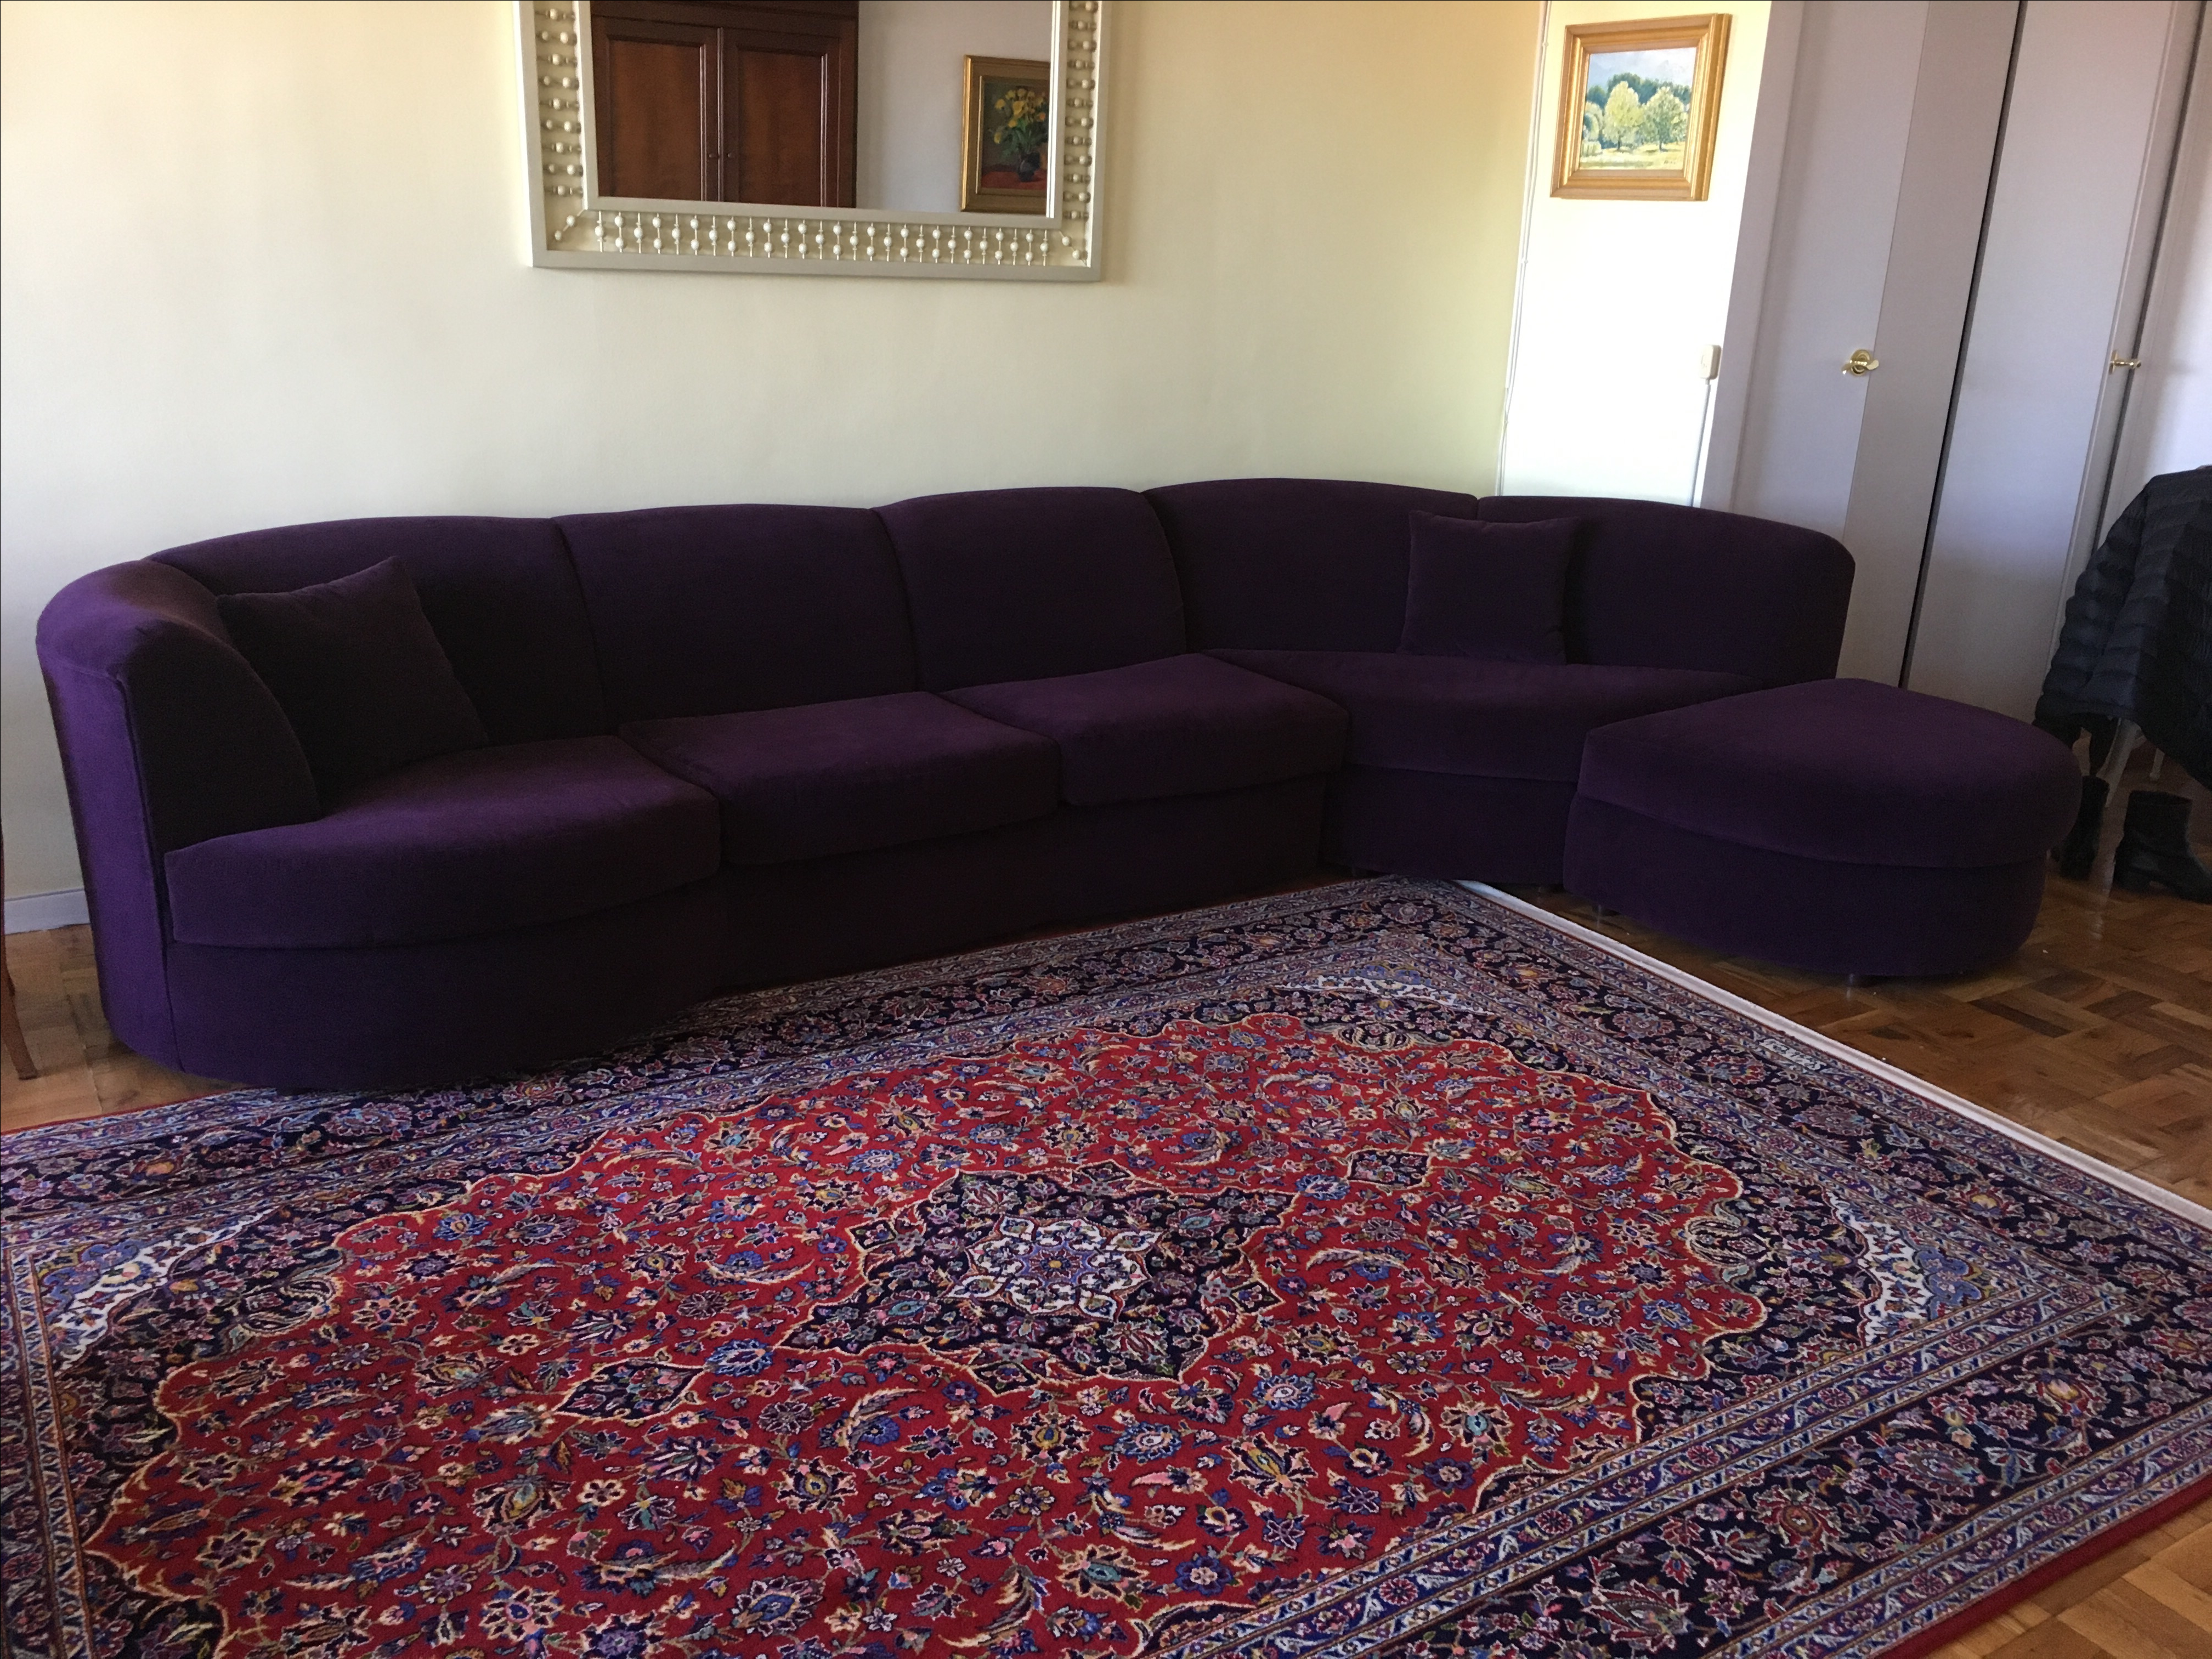 Weiman Sectional Sofa in Plum - Image 2 of 8  sc 1 st  Chairish : plum sectional sofa - Sectionals, Sofas & Couches